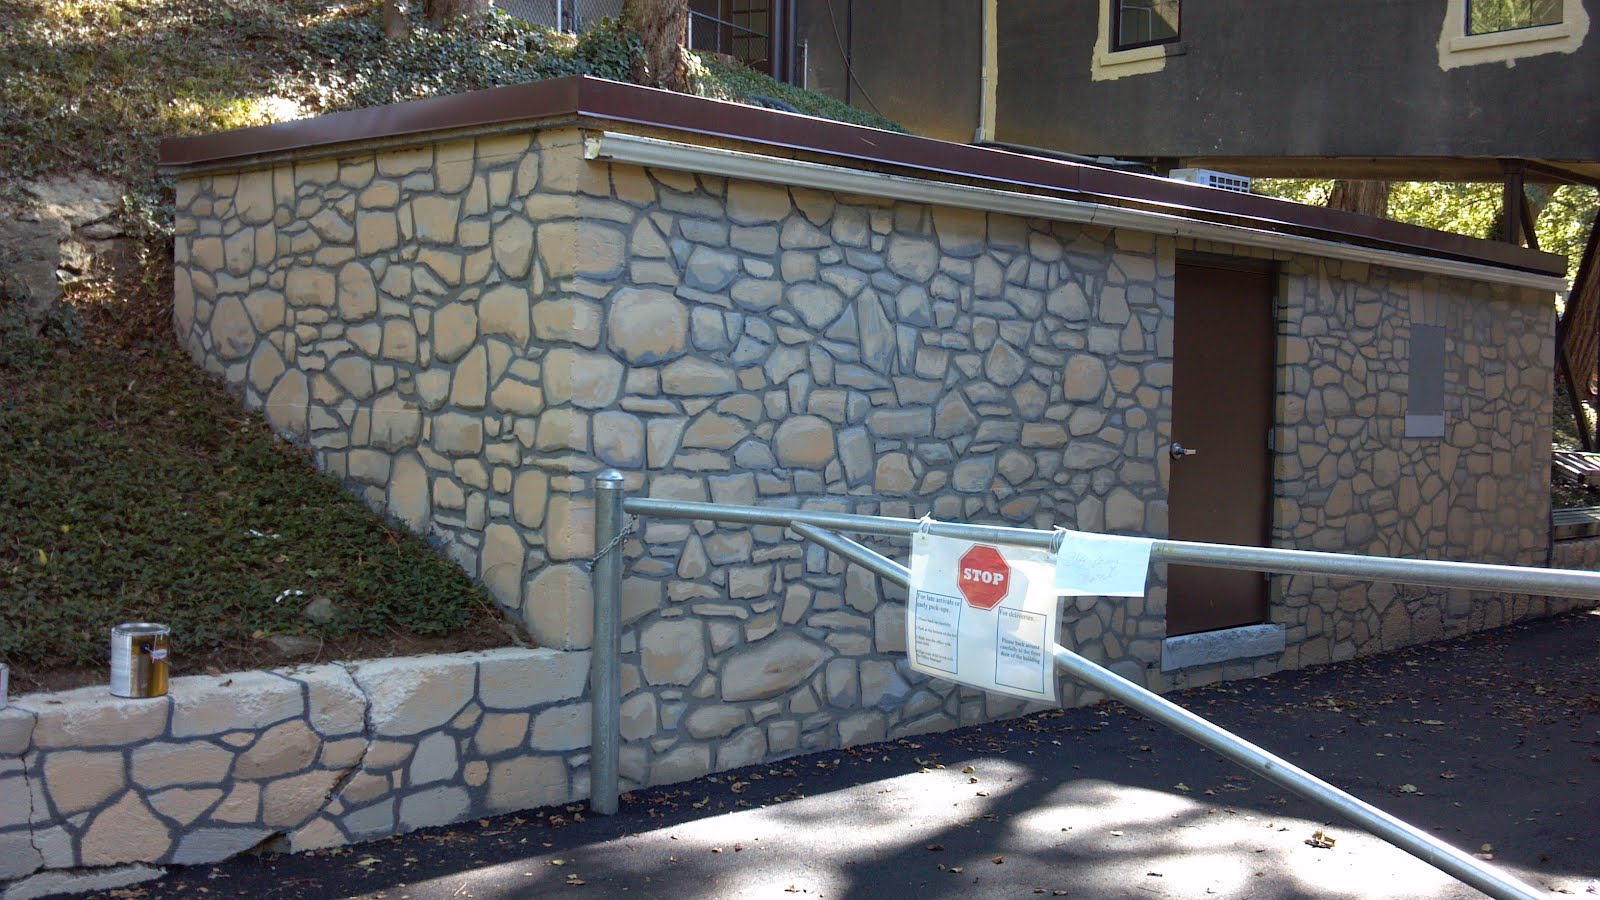 Faux Stone Wall Here S A Section Of The Retaining And Concrete Outbuilding That I Am Nearly Done Painting Ll Be Going Back To Work On It Tonight